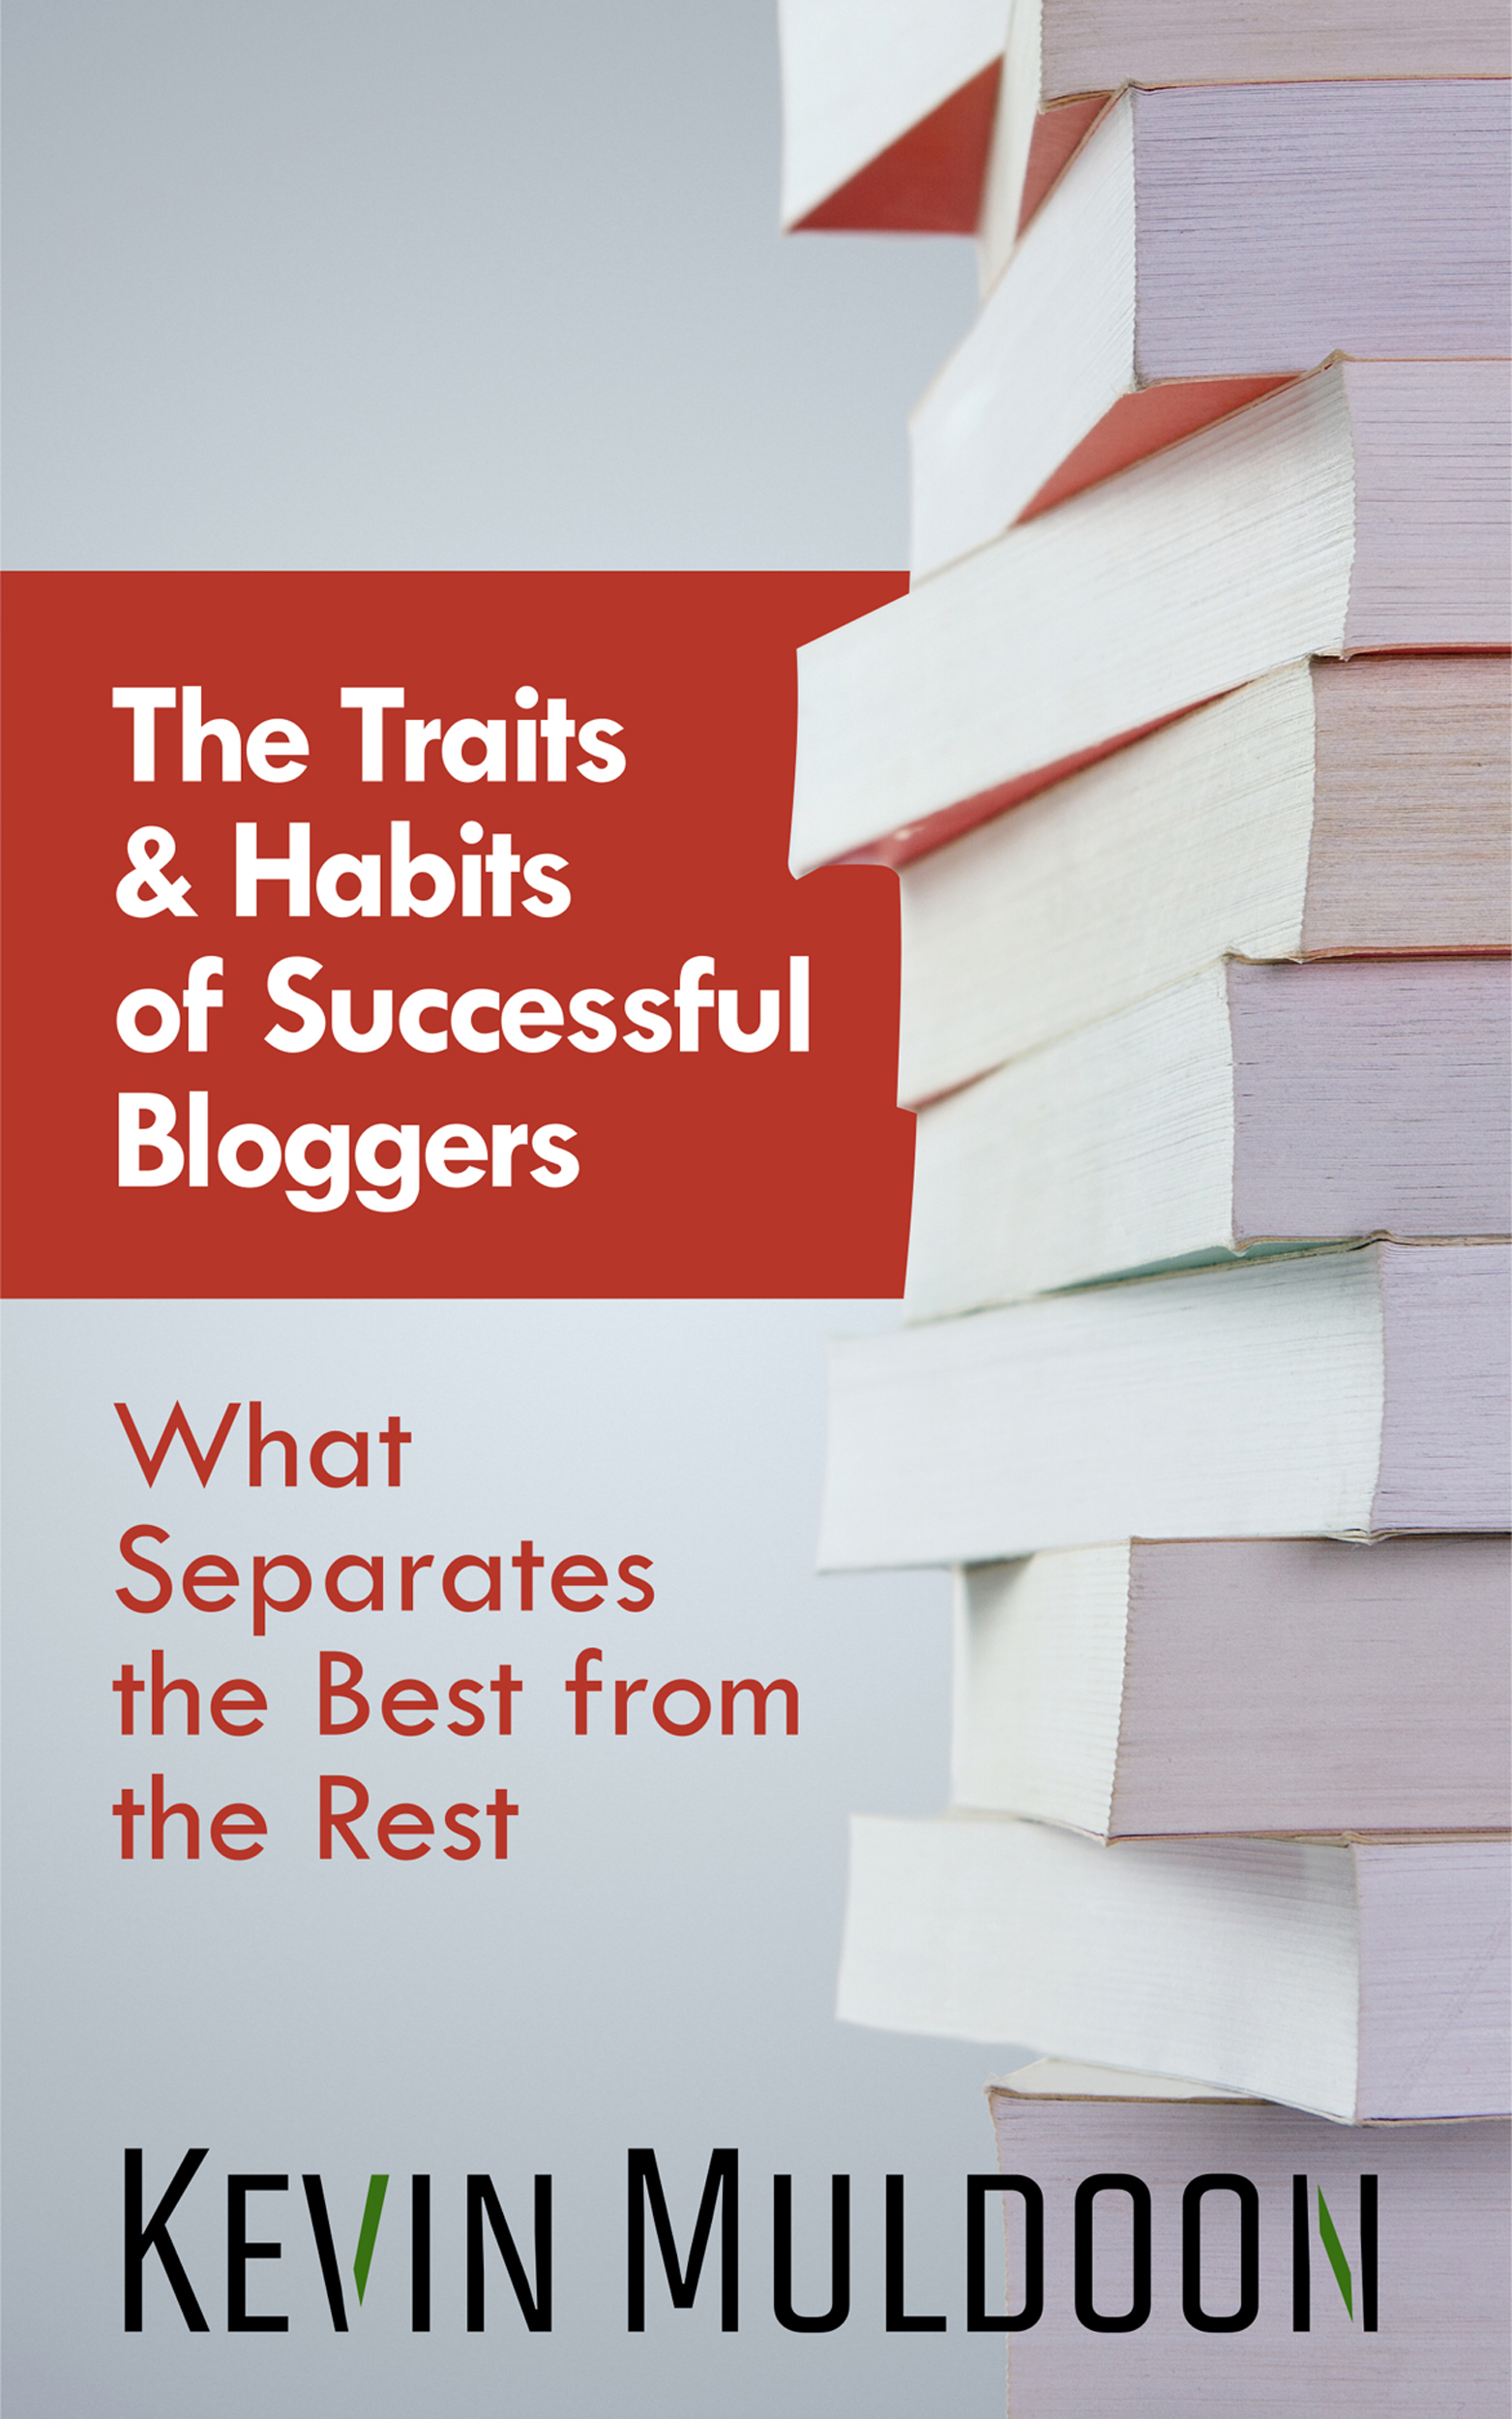 The Traits & Habits of Successful Bloggers By: Kevin Muldoon